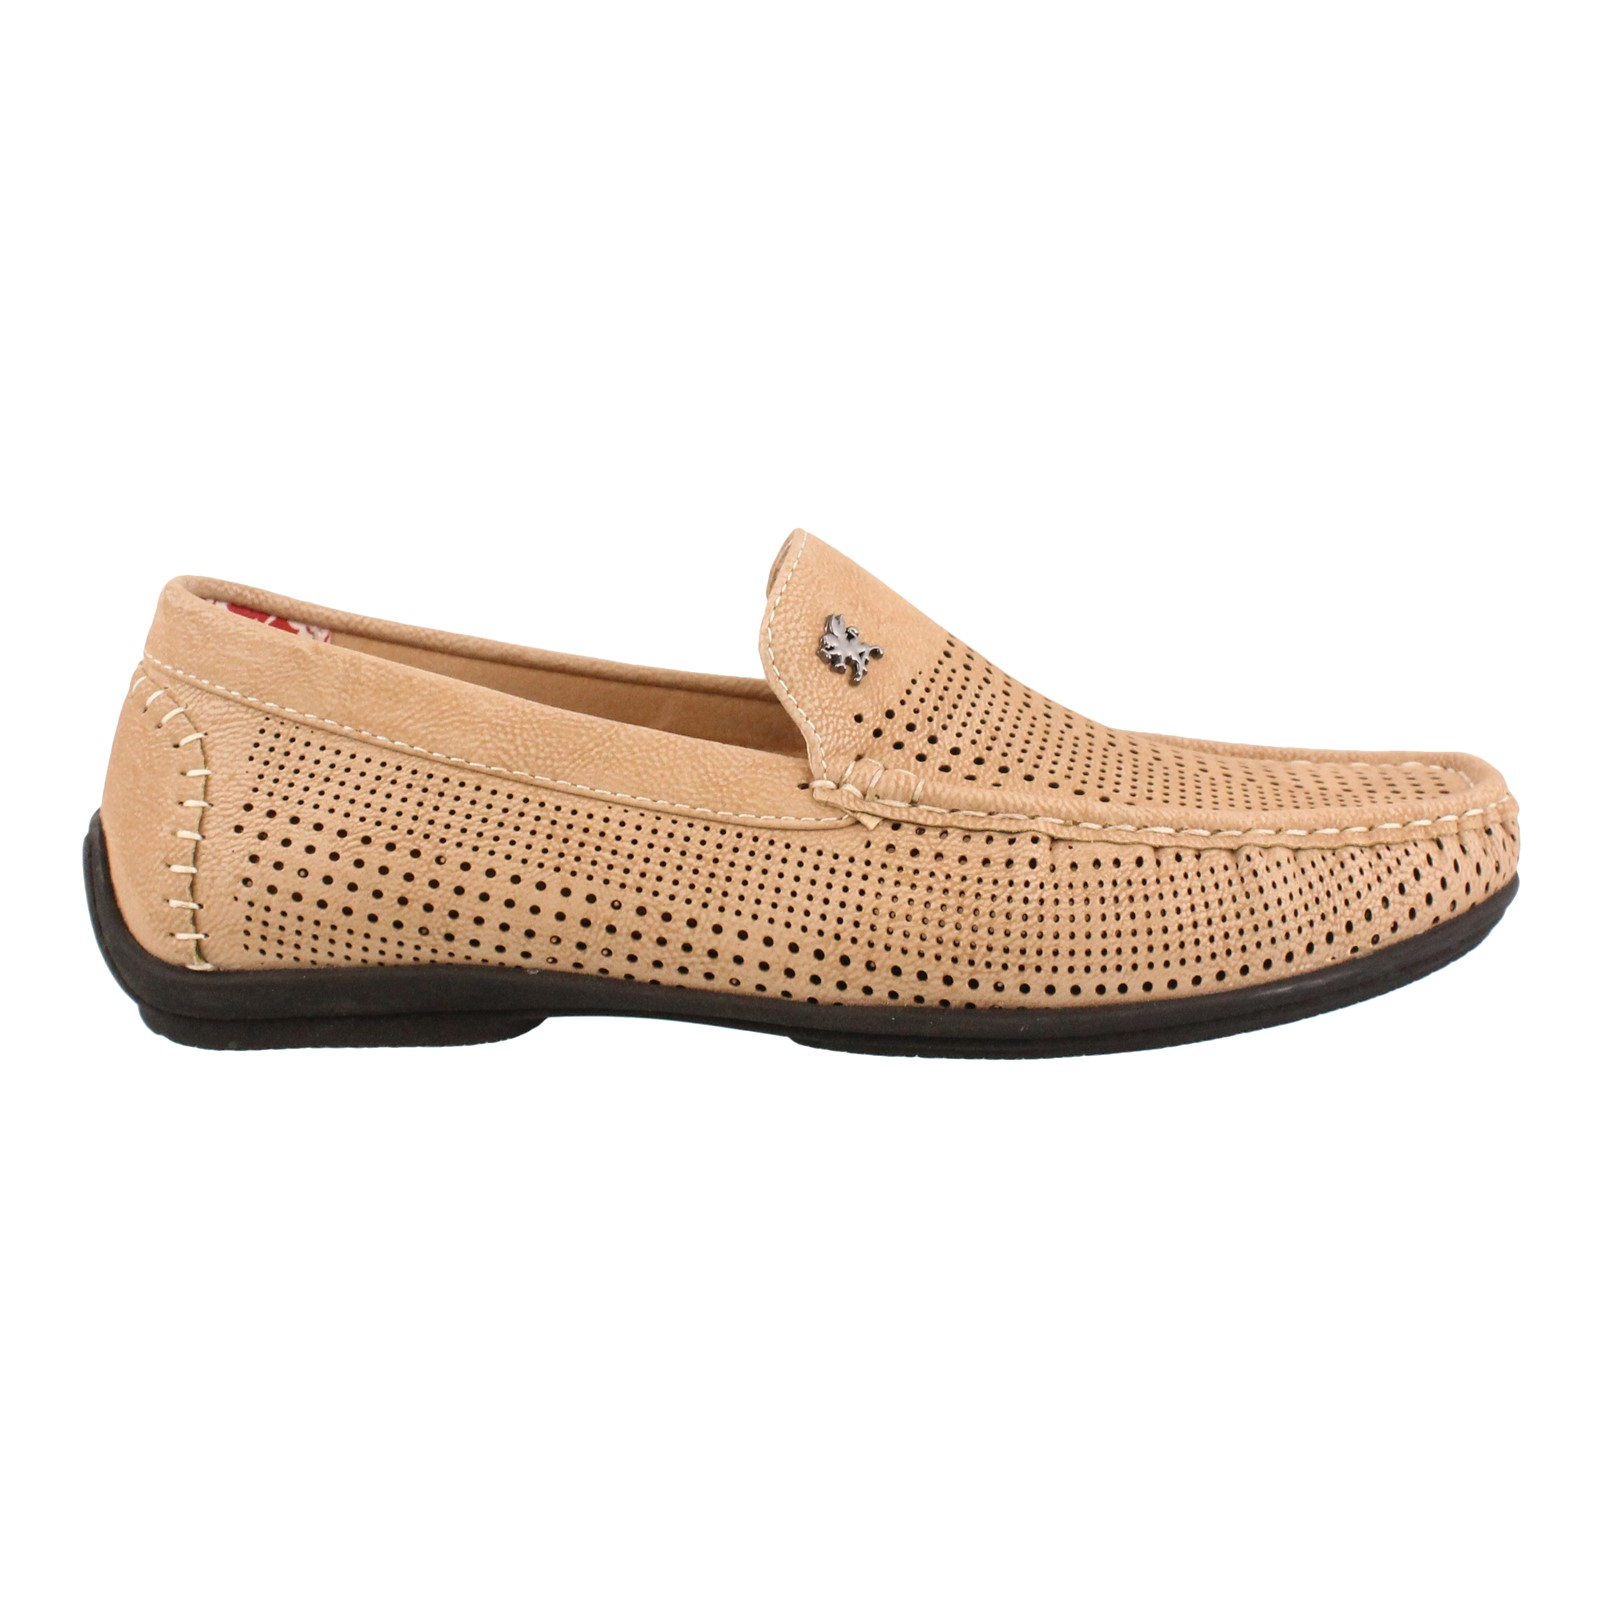 Men's Stacy Adams, Pippin Slip on Drivers